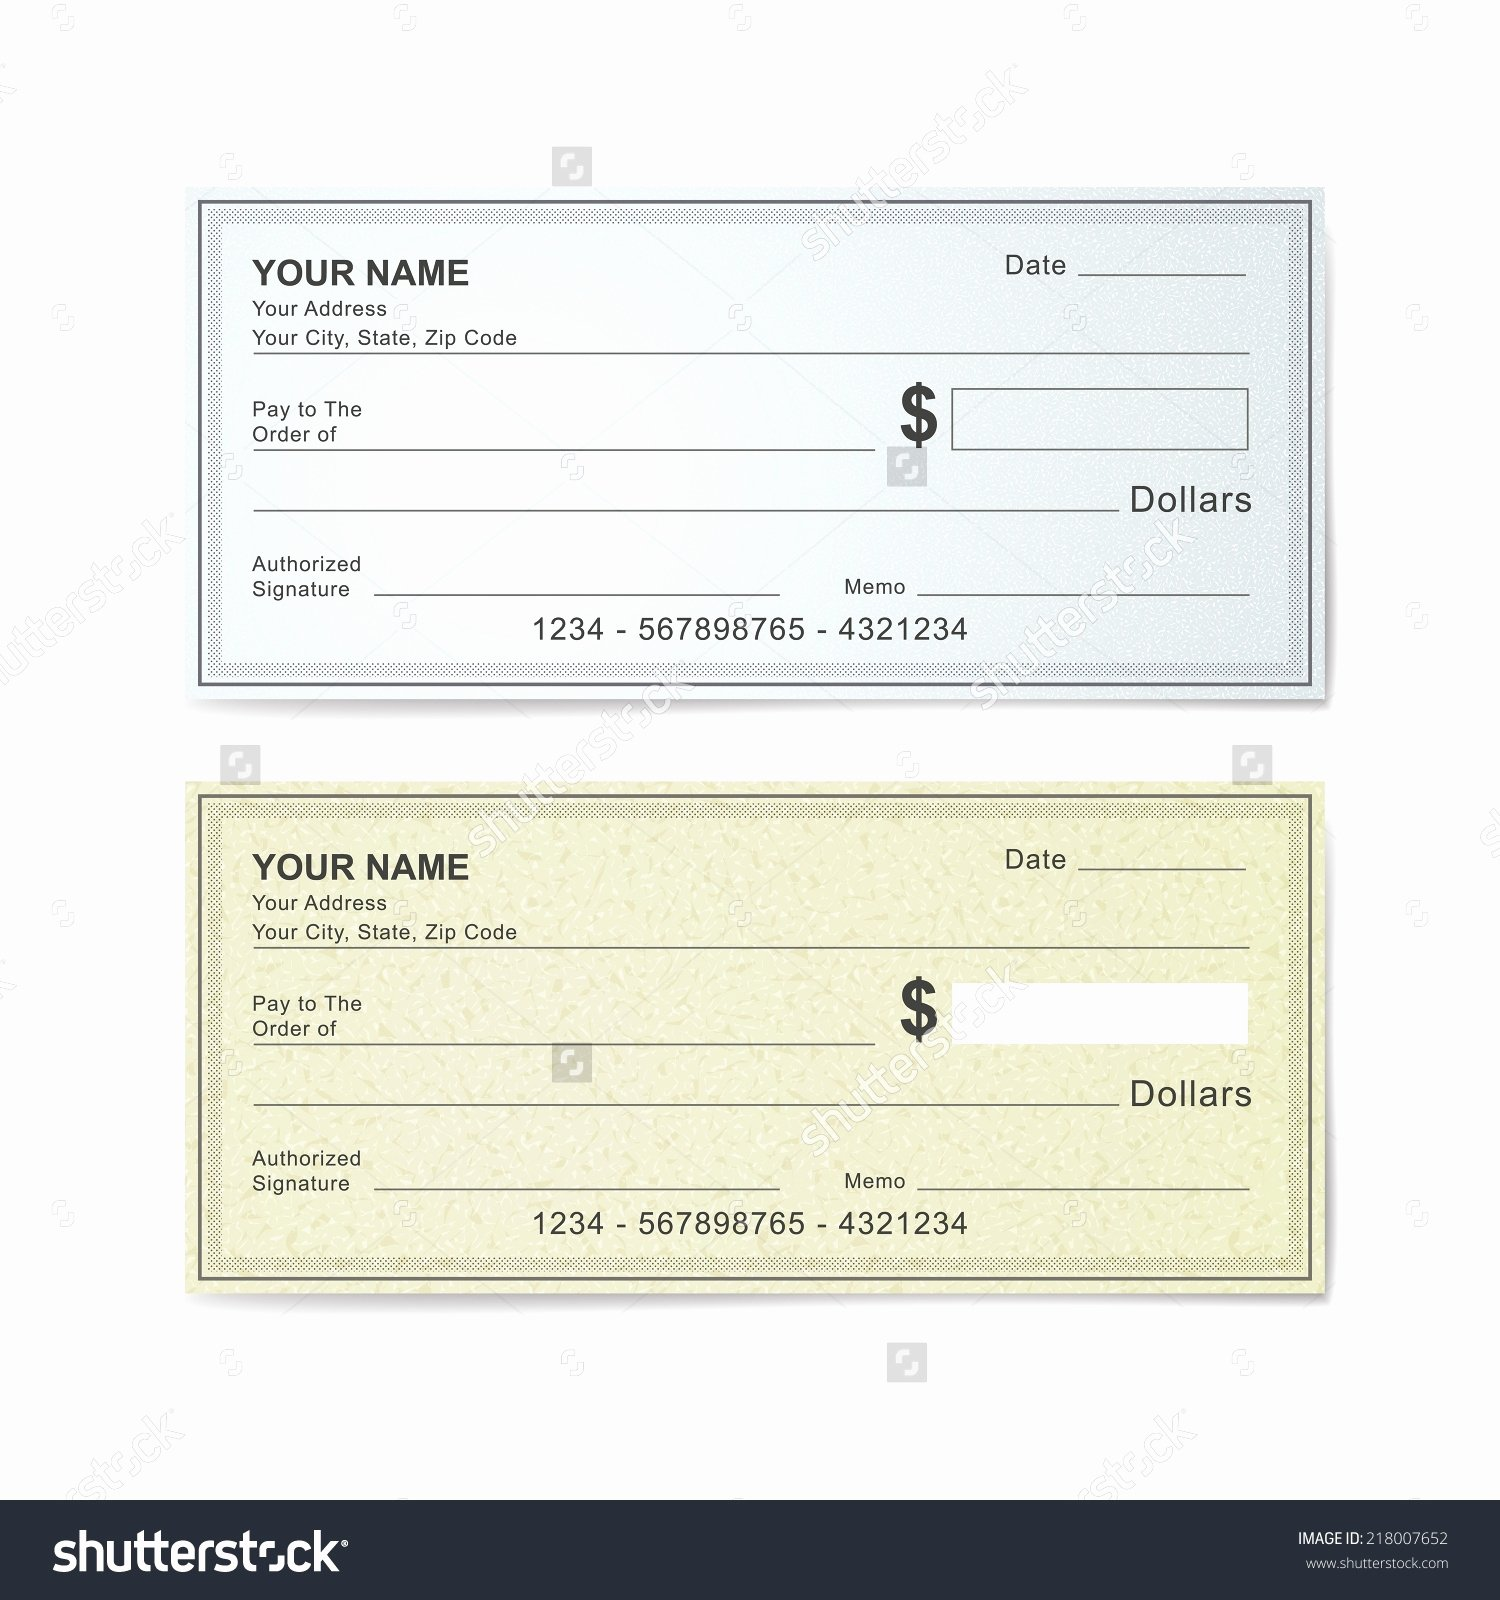 Cashiers Check Template Beepmunk